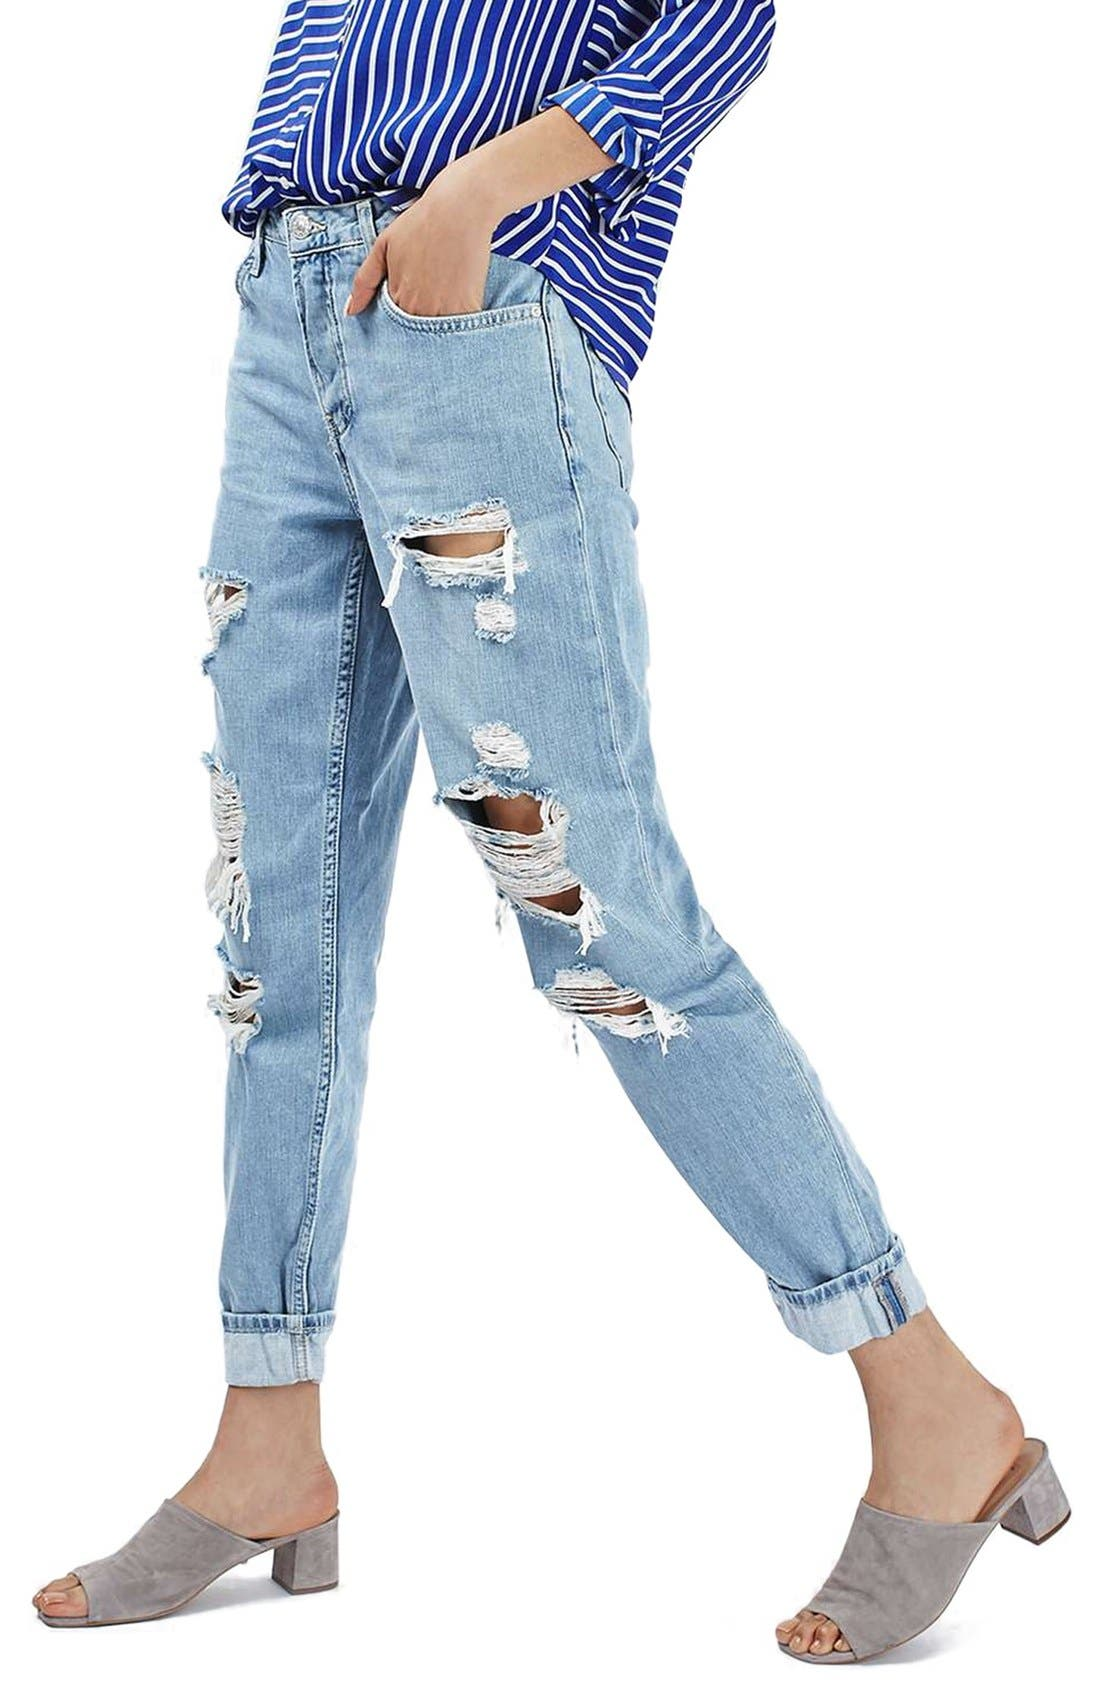 Alternate Image 1 Selected - Topshop 'Hayden' Super Ripped Boyfriend Jeans